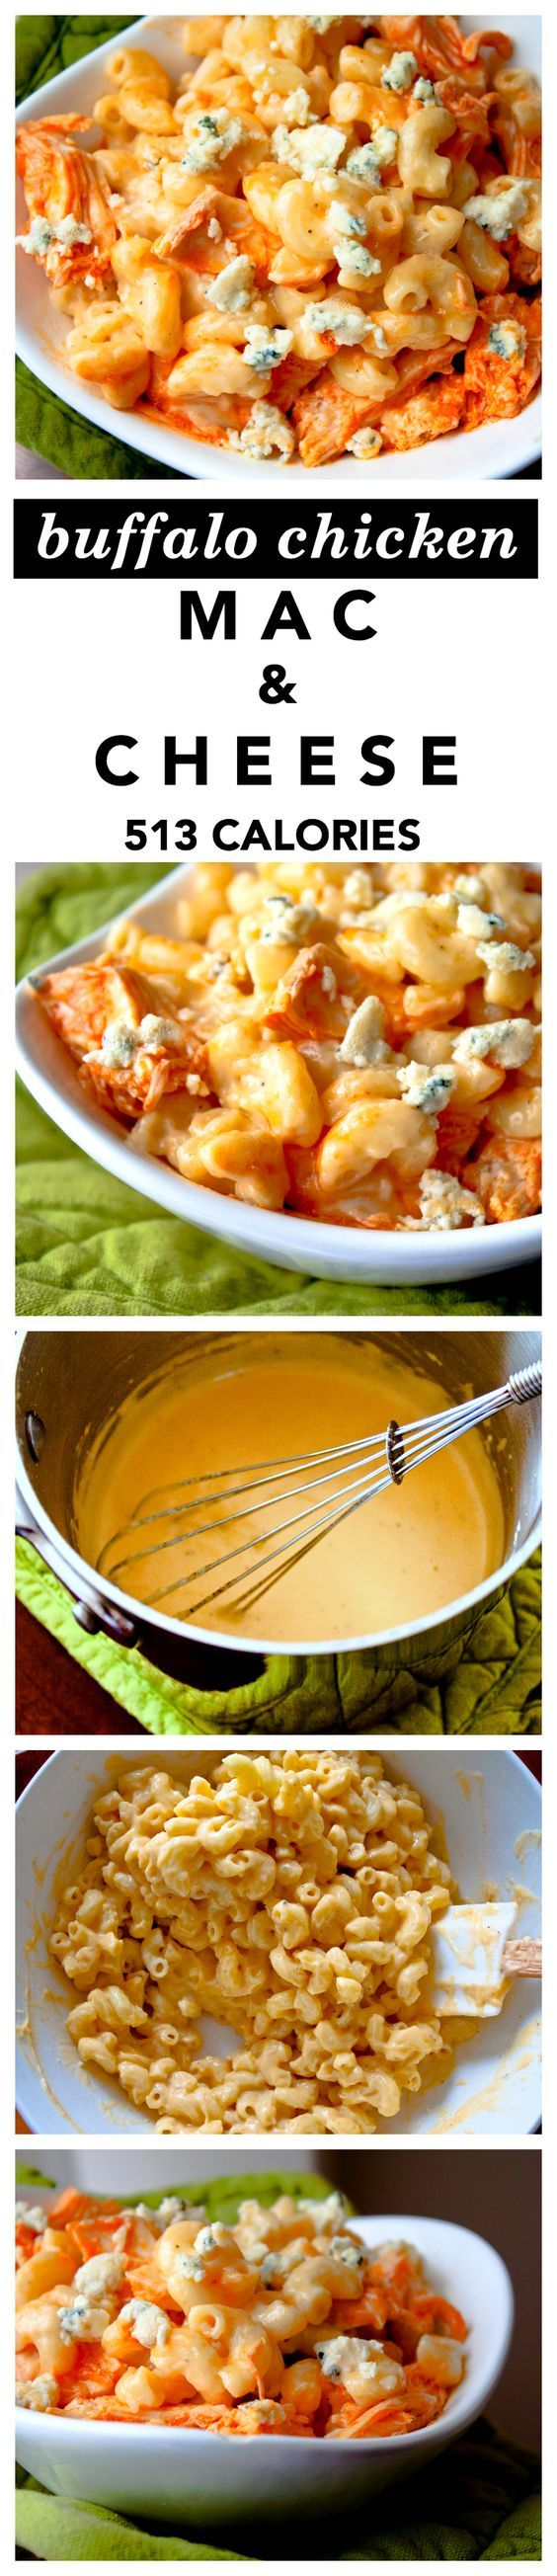 "Creamy Buffalo Chicken Macaroni and Cheese Recipe! This ""comfort in a bowl"" mac and cheese has shredded chicken, hot sauce, blue cheese, and a homemade cheddar cheese sauce! 531 calories per serving:"